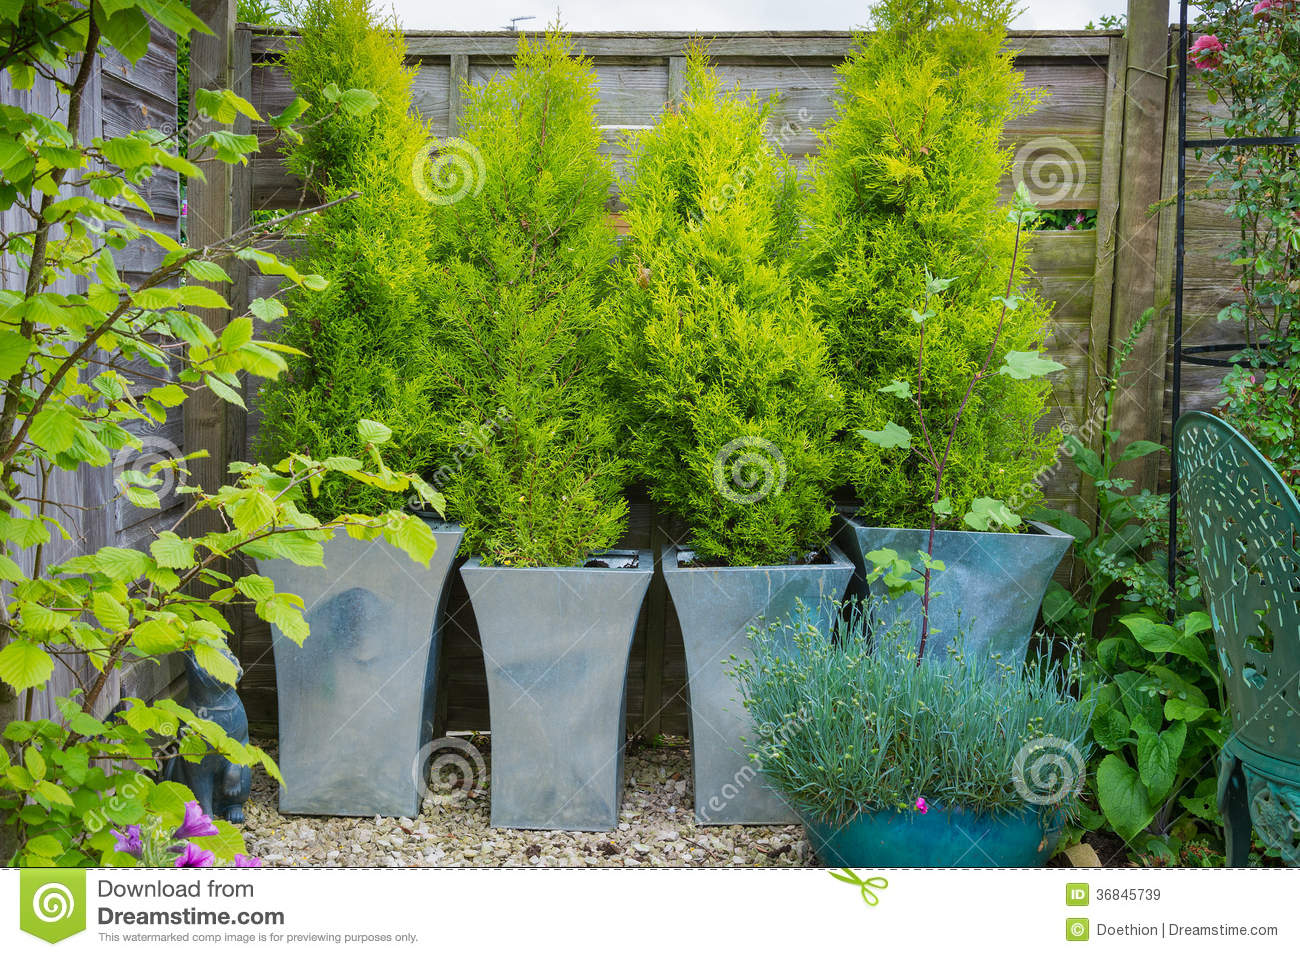 Garden With Evergreen Trees In Containers Royalty Free Stock